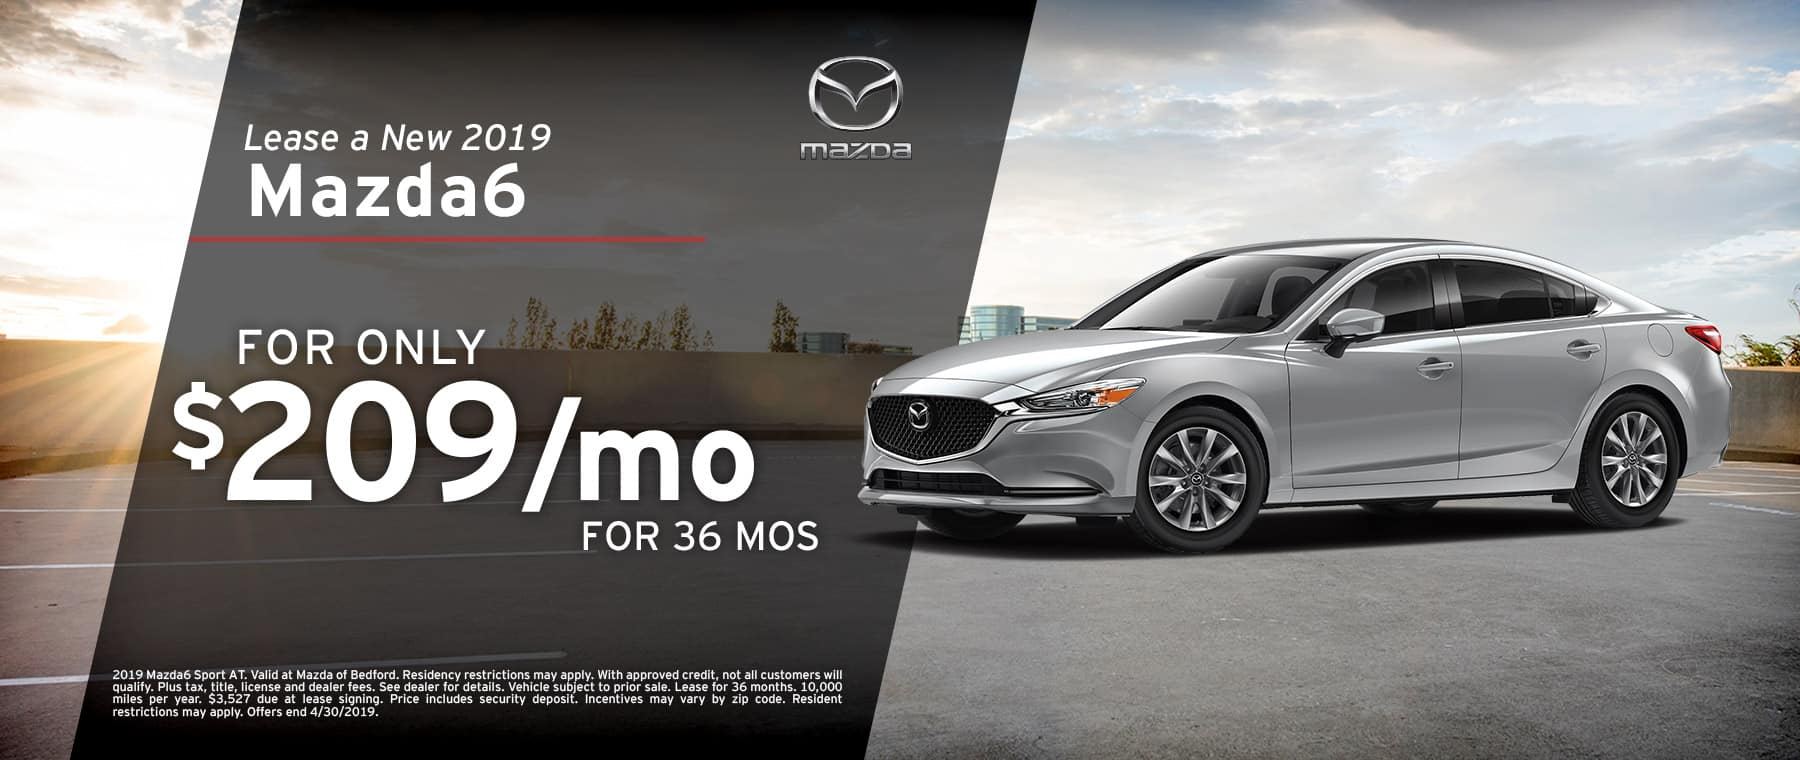 Save when you lease a 2019 Mazda6 at Mazda of Bedford